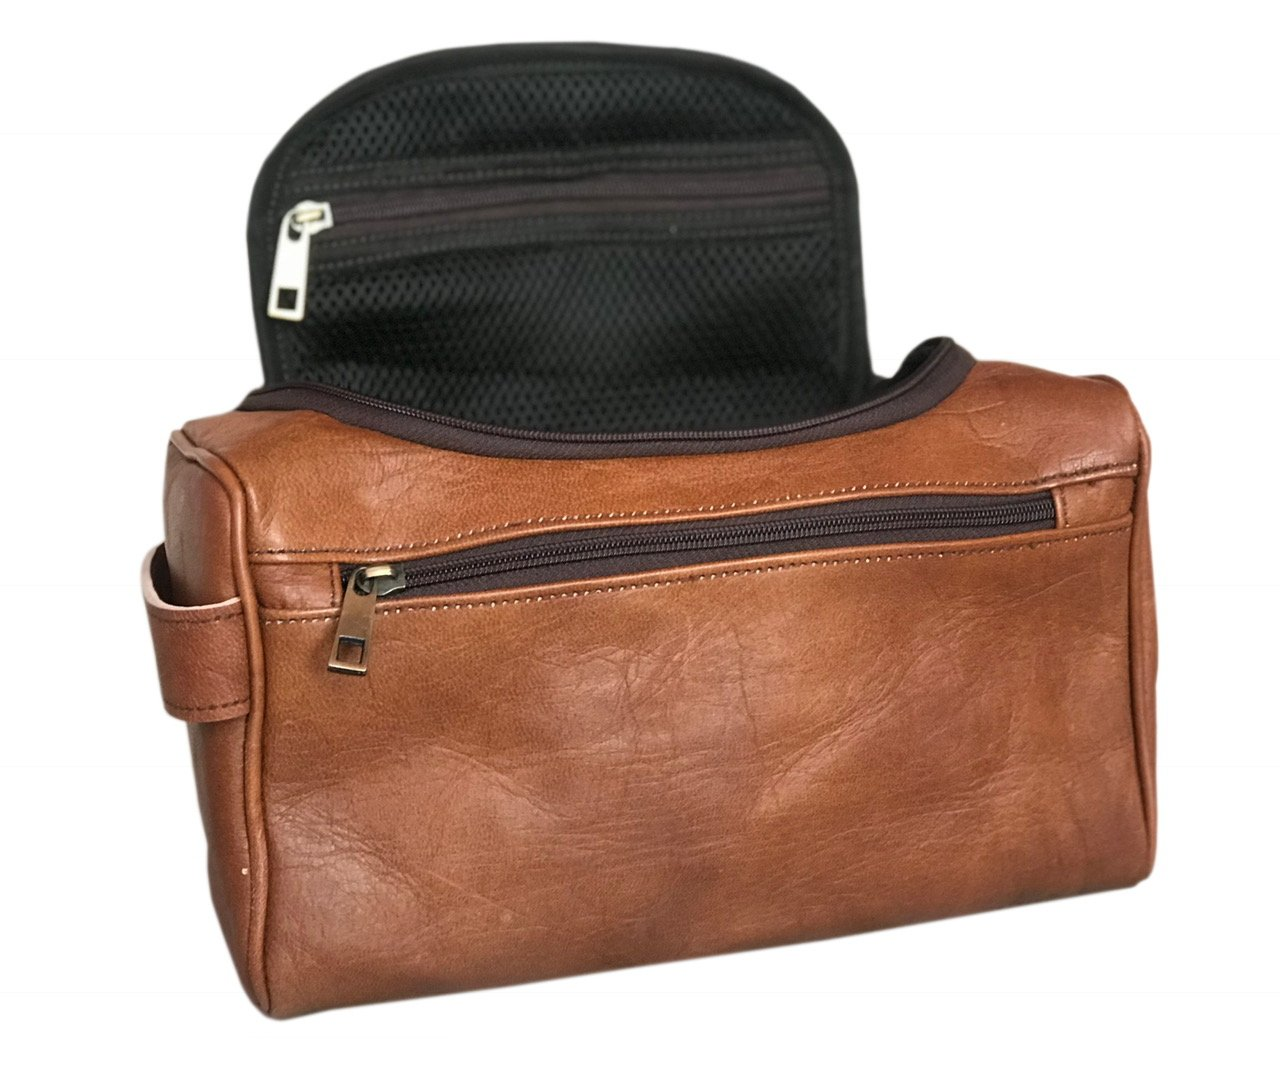 19d71a981fe8 Amazon.com  STYLISH Leather Toiletry Bag Leather Travel Kit Shaving Makeup  Men Cosmetic Bags Case  Health   Personal Care